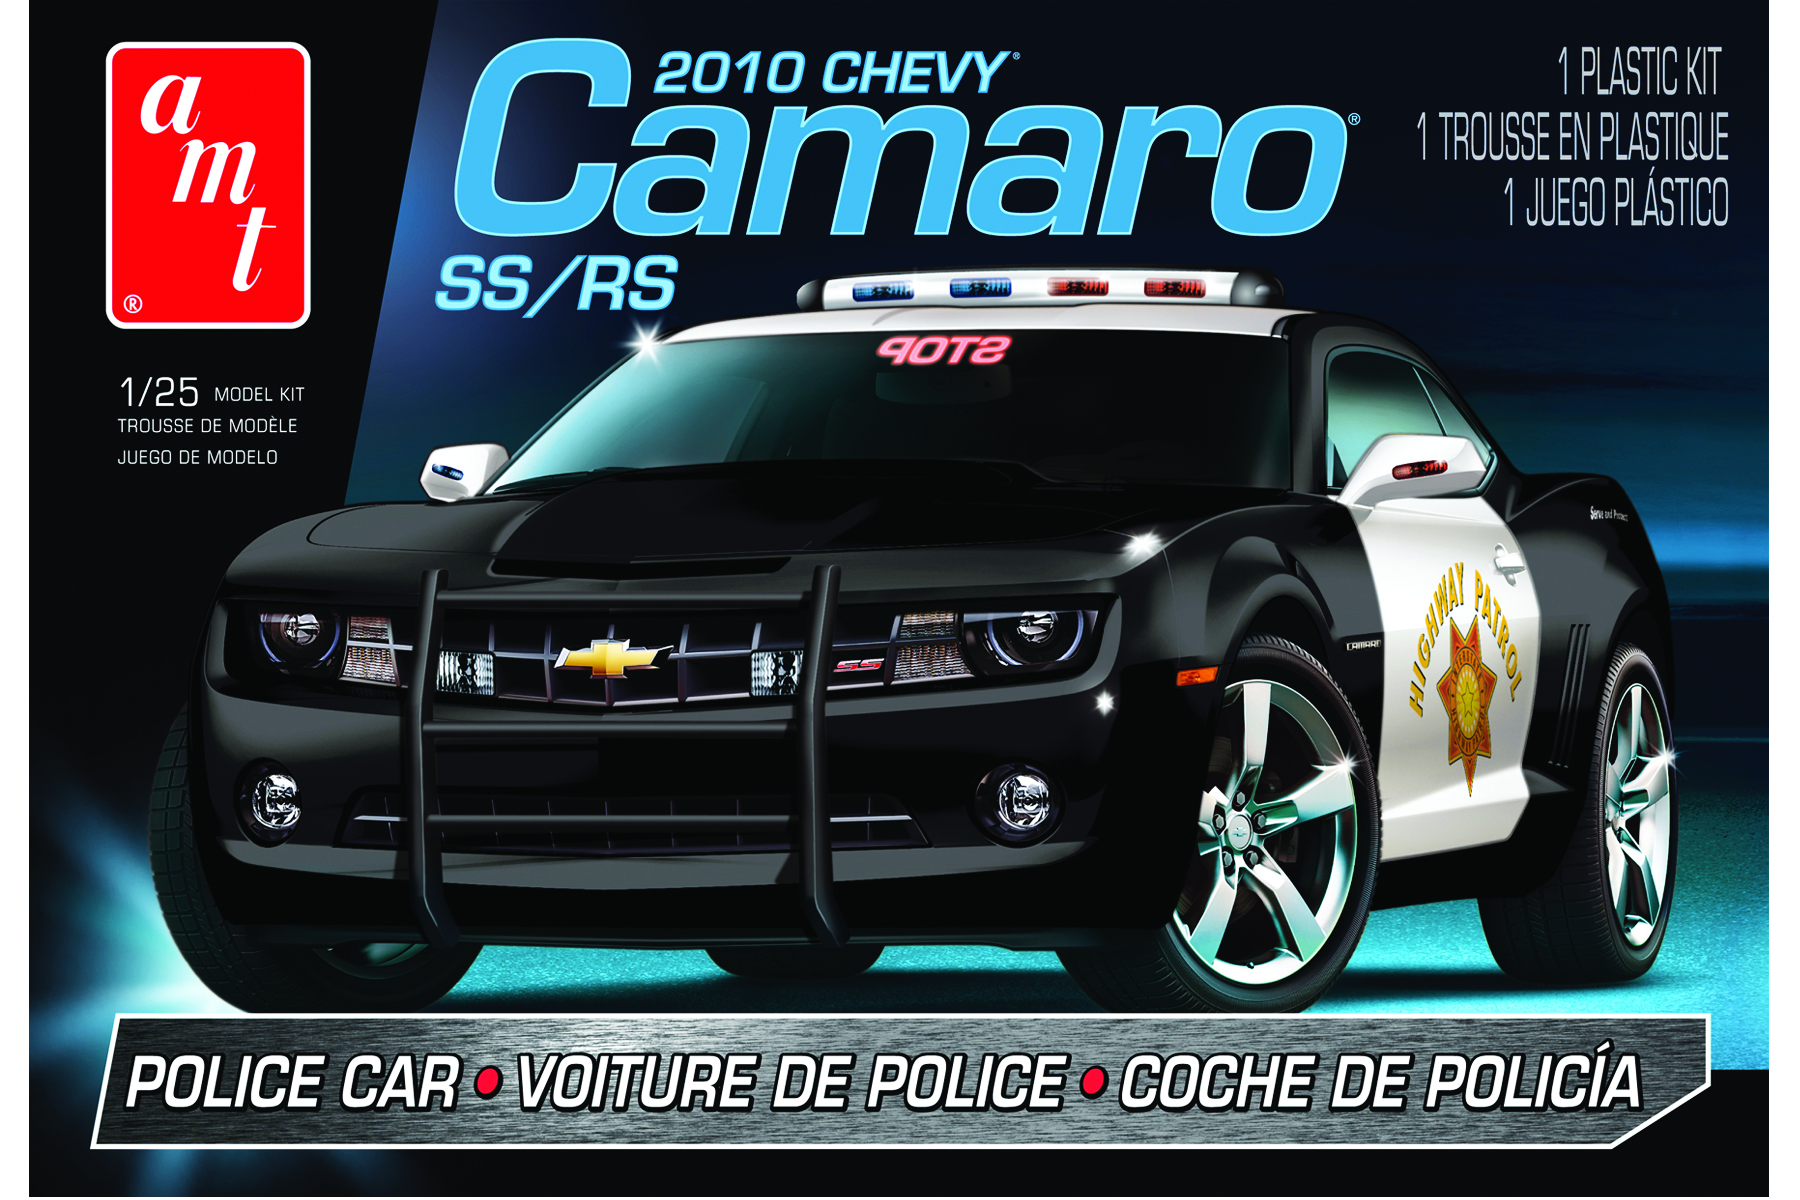 2010 Chevy Camaro Police Car (817)